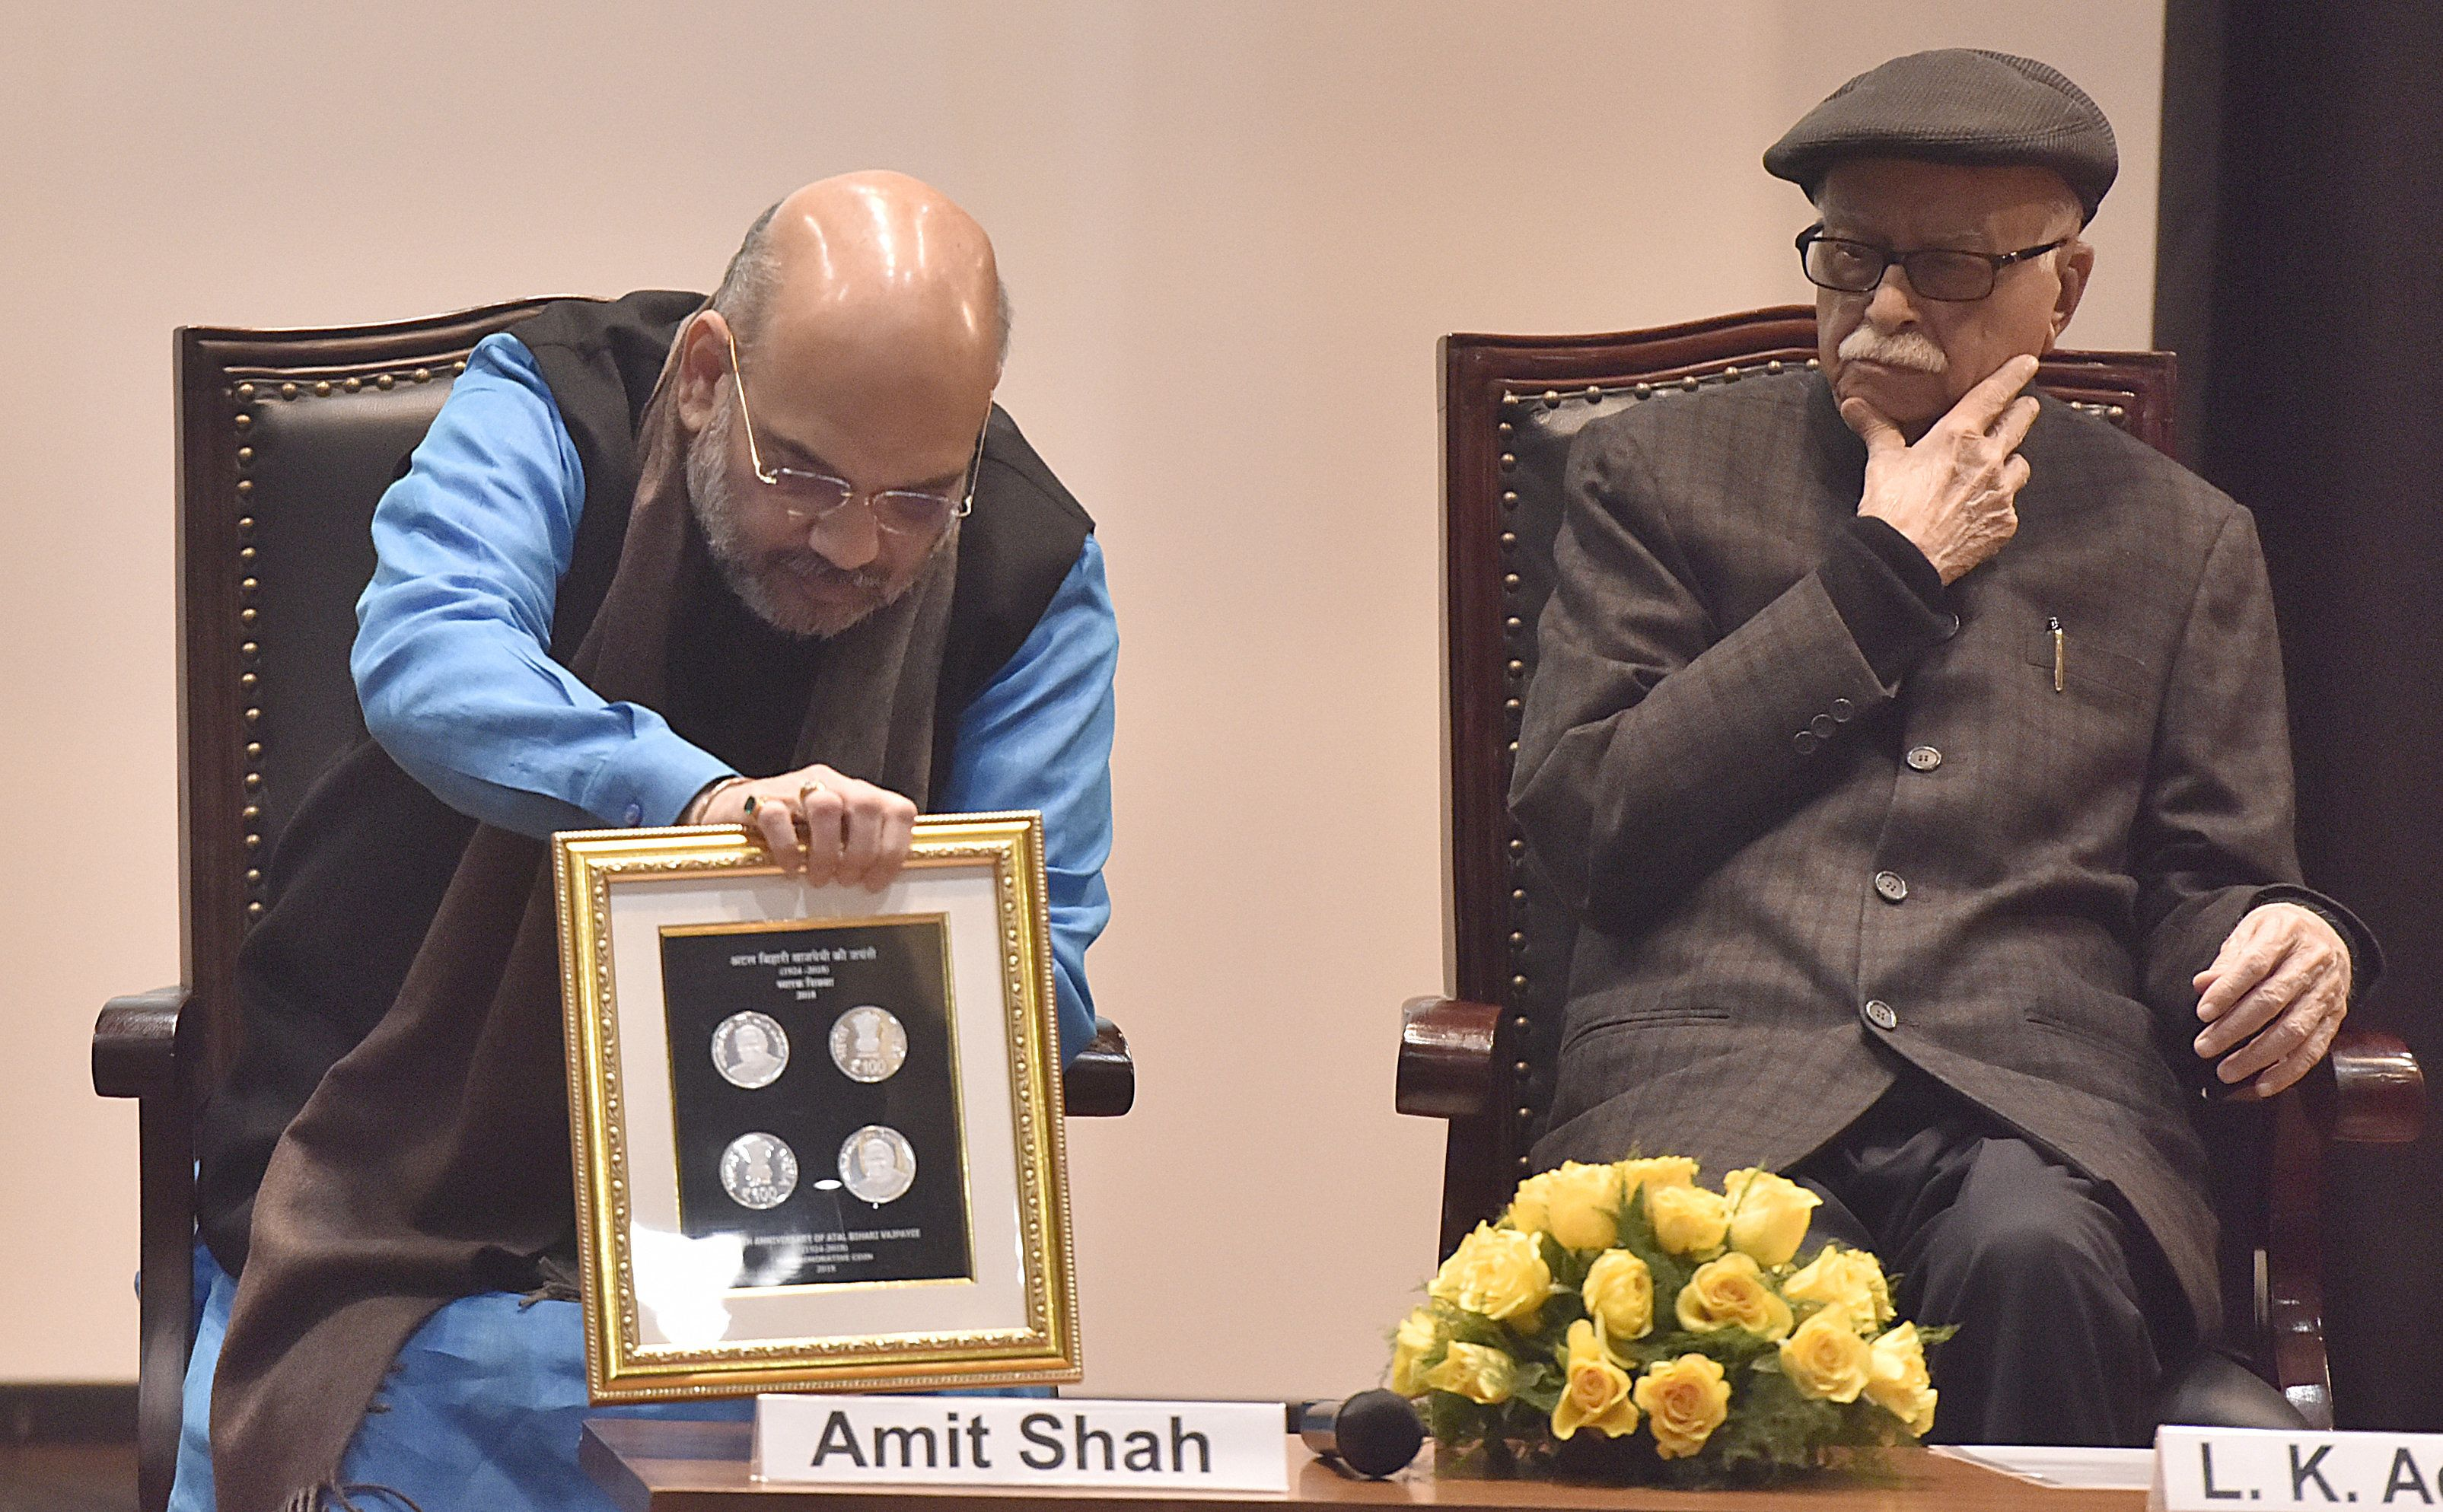 End Of Electoral Politics For LK Advani As Amit Shah Gets BJP Ticket From